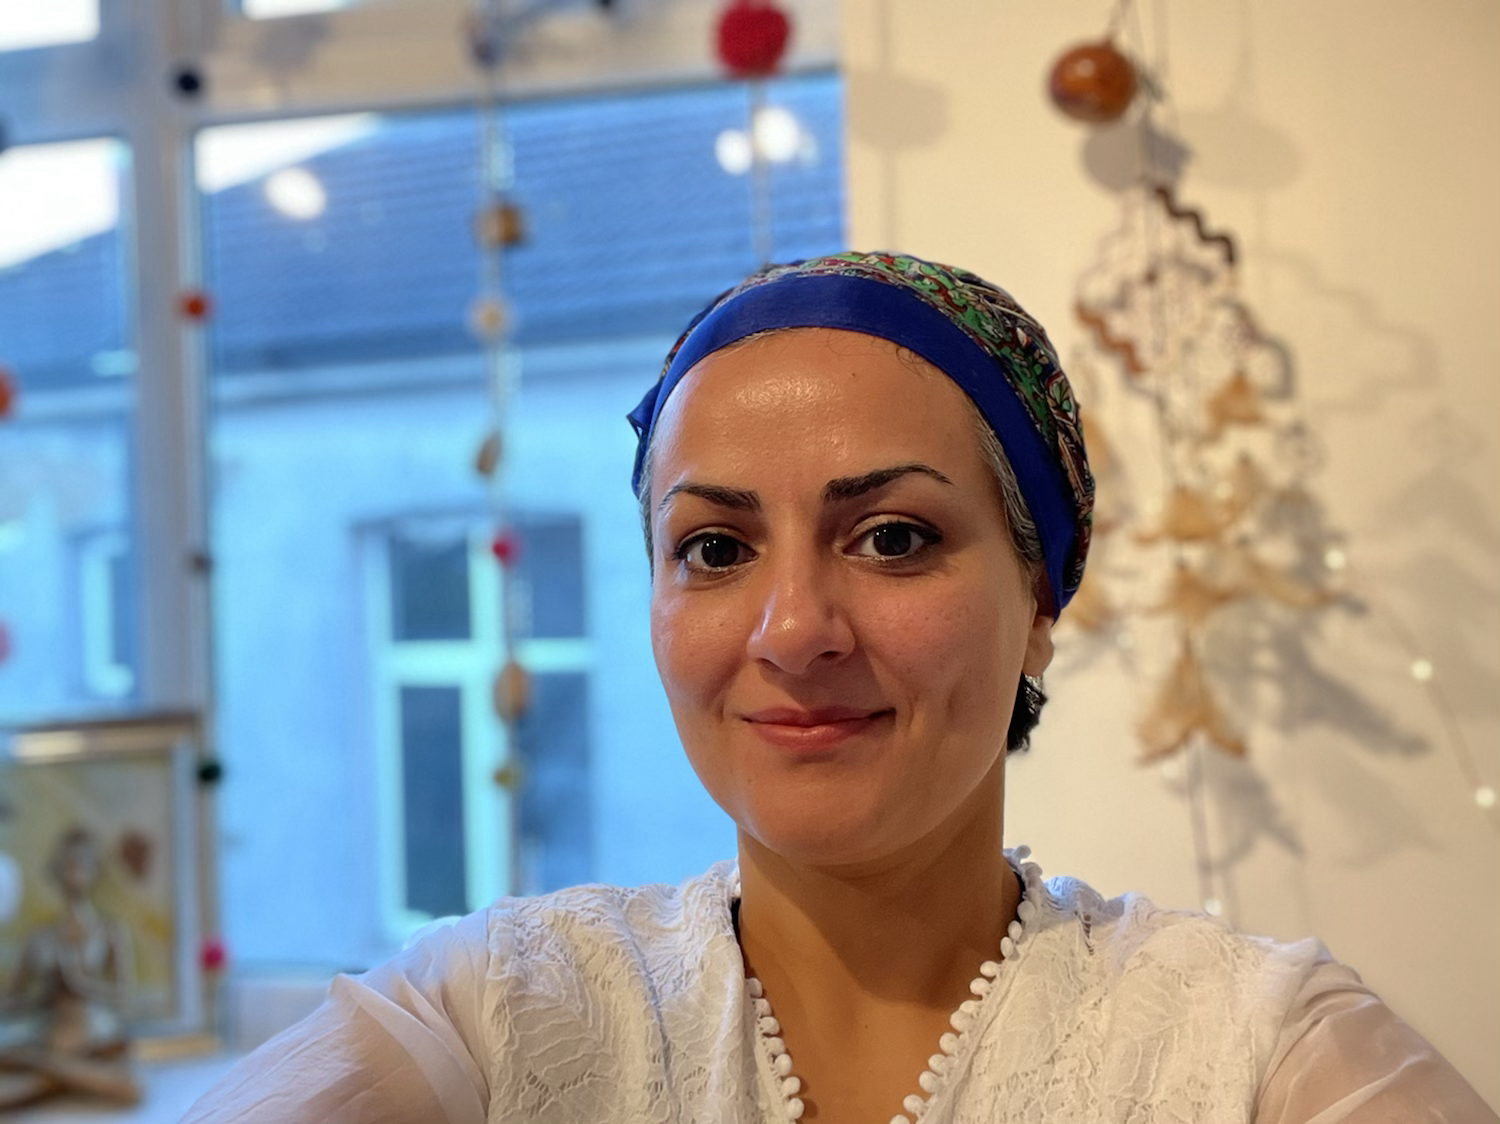 After Kundalini yoga bliss